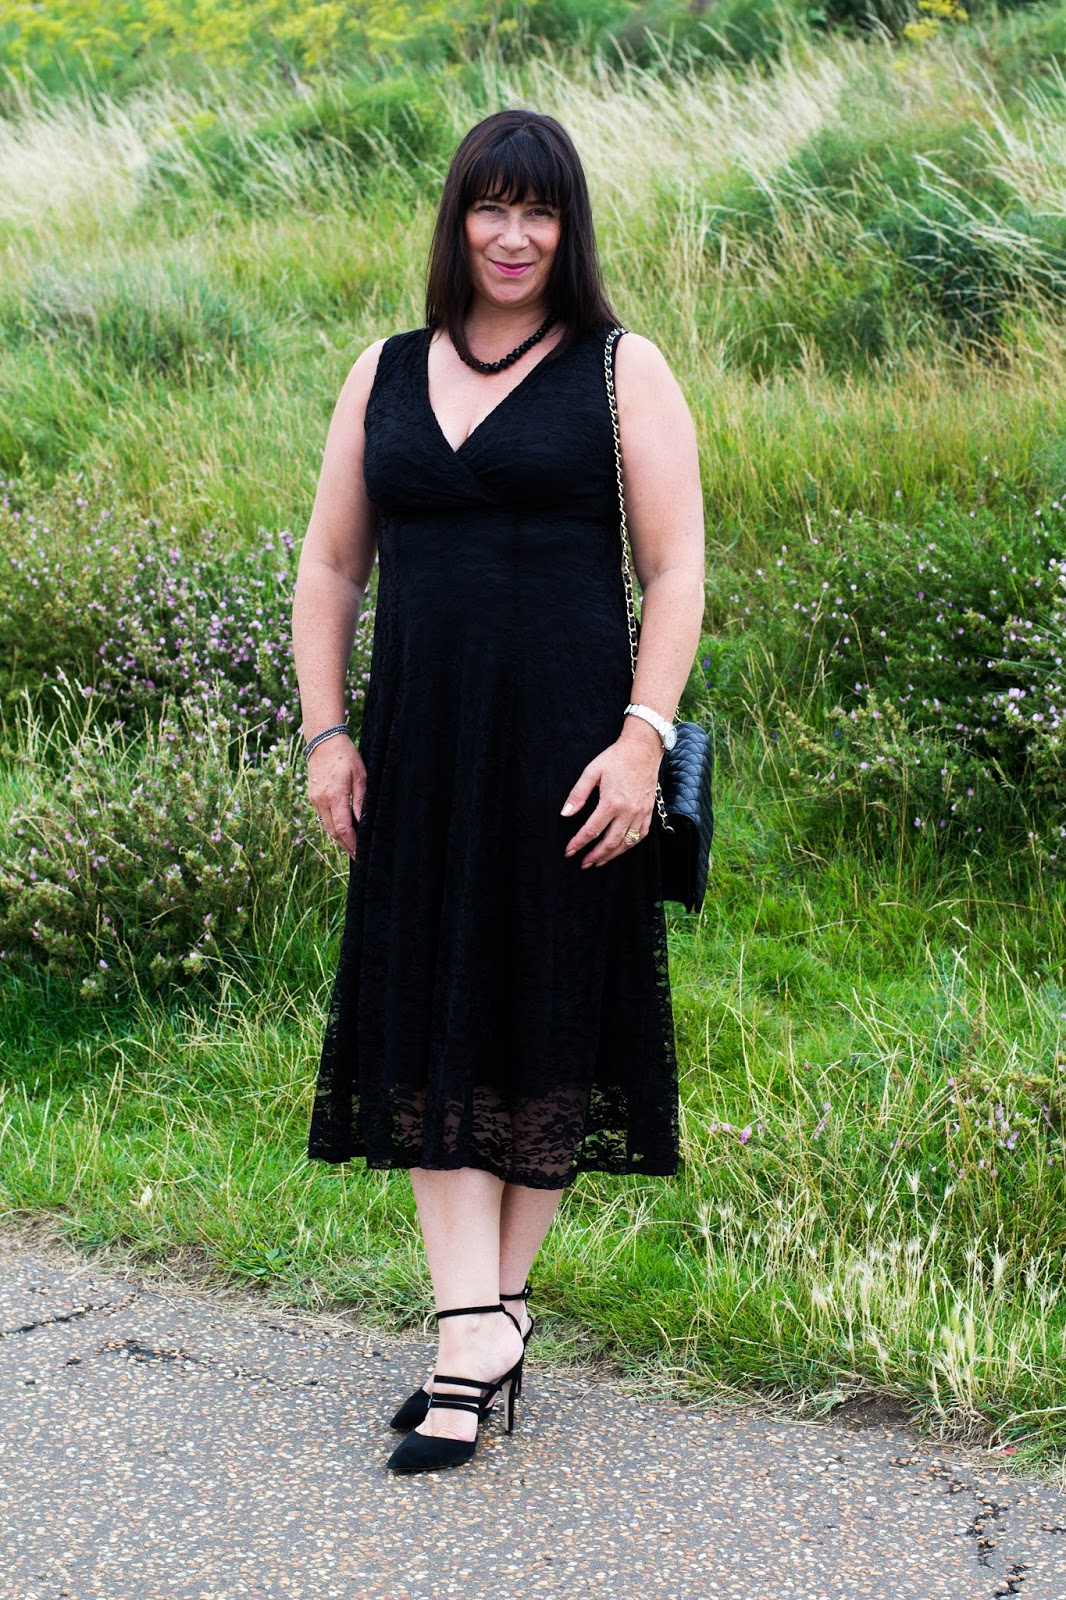 Wearing a black lace dress and high heels, Mummabstylish over 50s fashion blogger